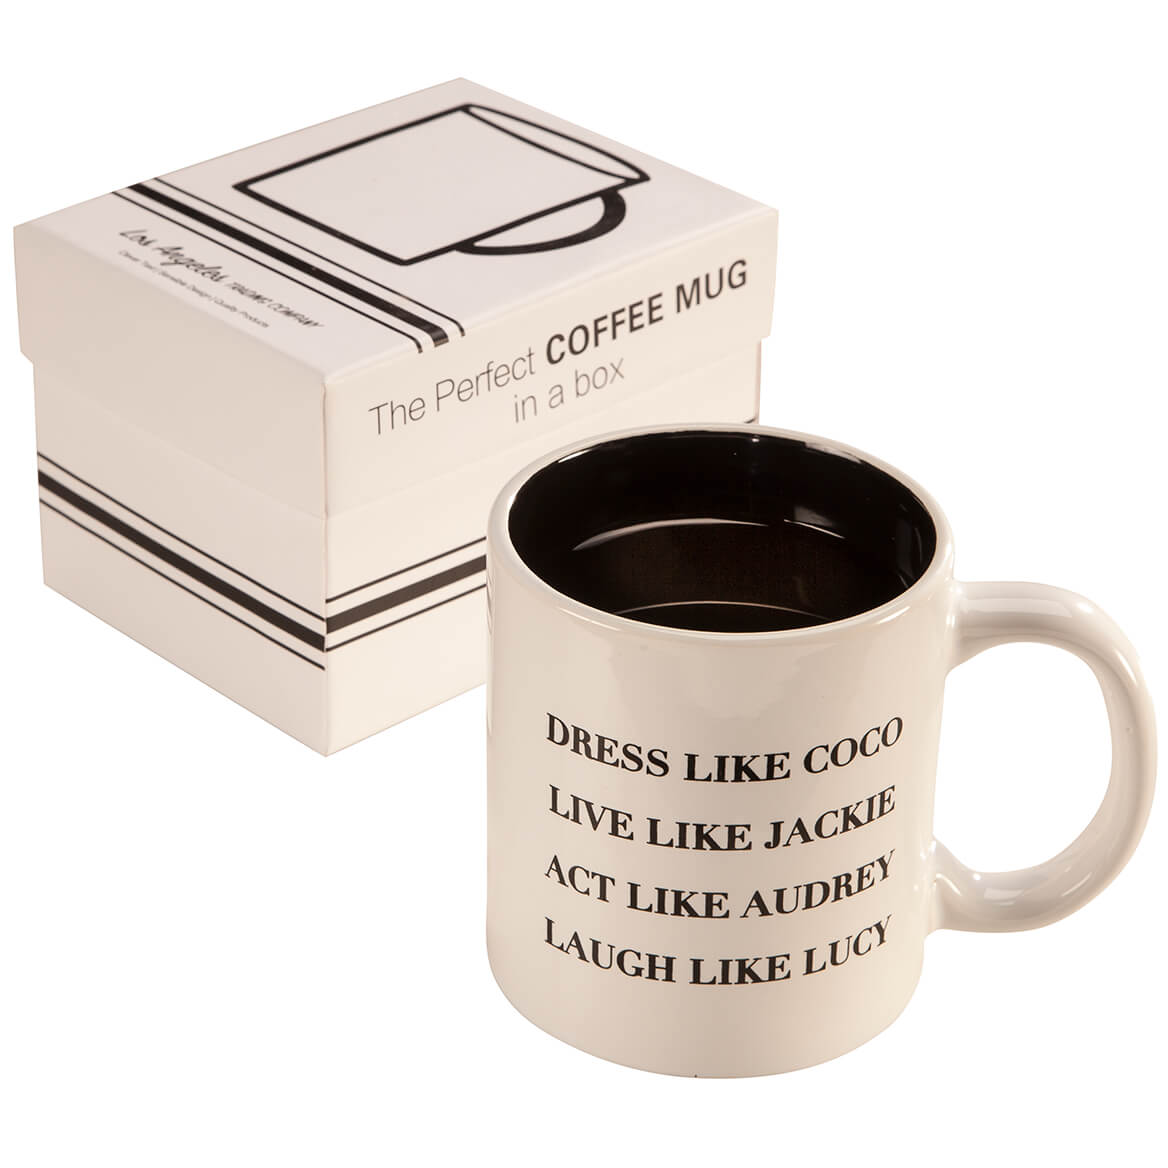 Dress Like CoCo Mug Channel the style and grace of four incredible icons--Coco, Jackie, Audrey and Lucy--while you enjoy your morning cup of coffee or tea in this Dress Like Coco mug. The inspirational text is printed on both sides. White ceramic mug with black glaze inside. Makes a great gift idea. Comes in a gift box. Dishwasher safe. Ceramic coffee mugText printed on both sidesBlack glaze insideComes in a gift boxHolds 15 oz.